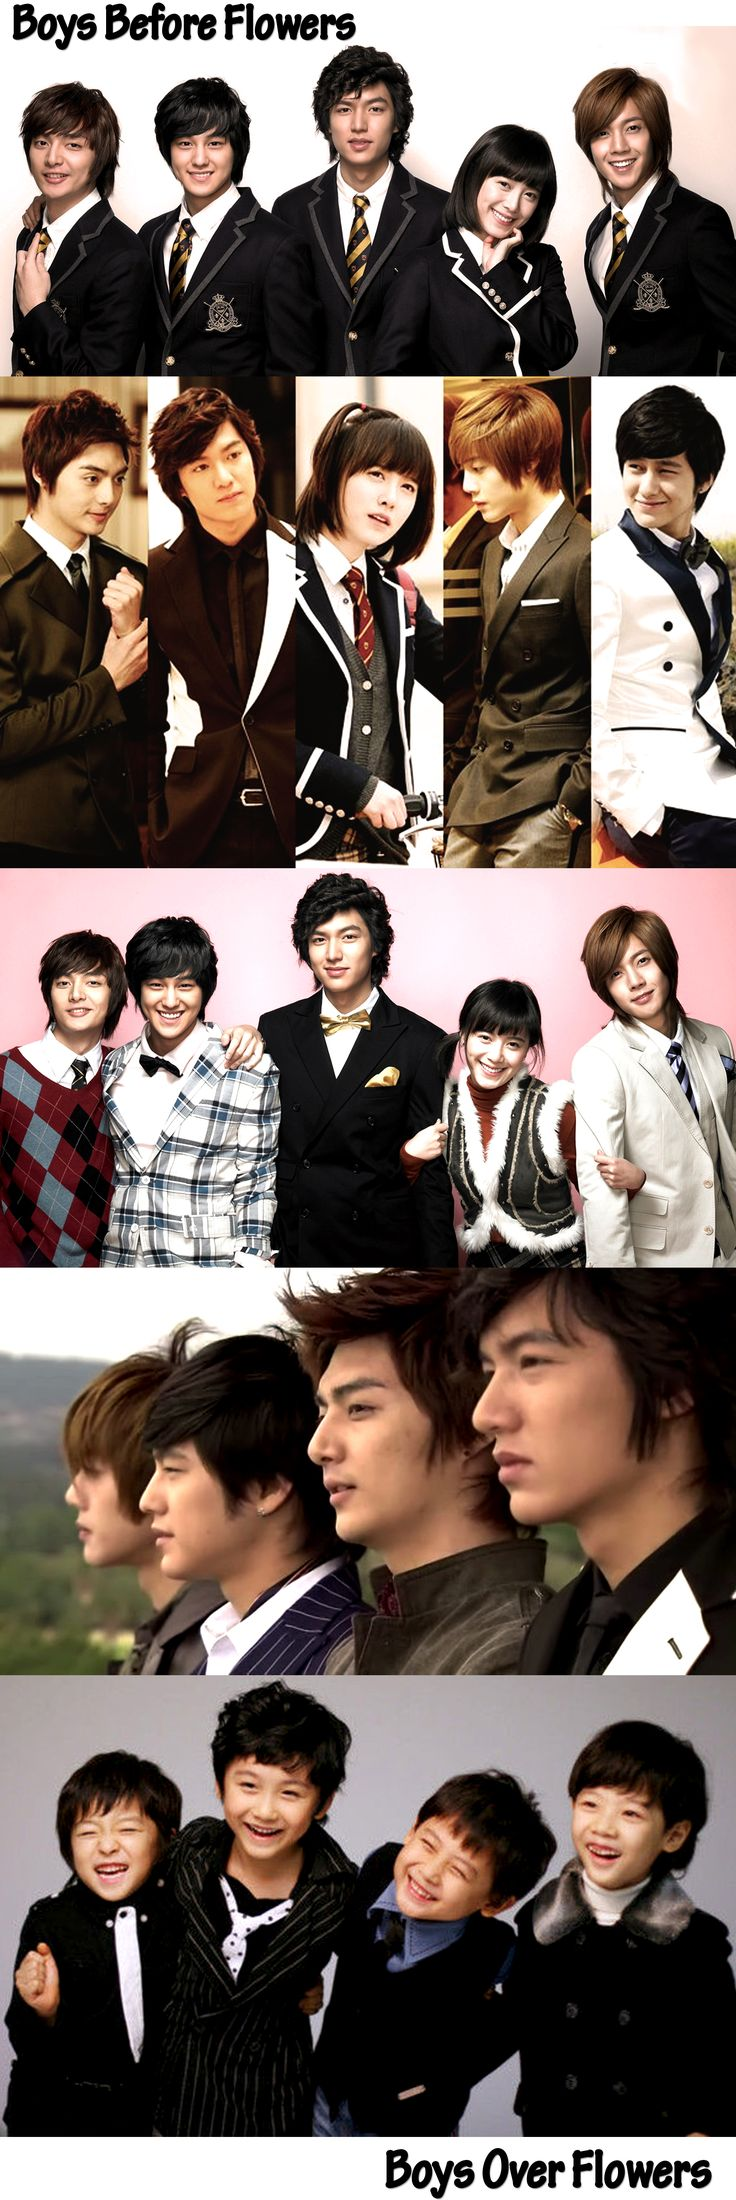 꽃보다 남자 - Boys Before Flowers (Boys Over Flowers) - KDRAMA 2009 - 25 episodes - Koo Hye Sun / Lee Min Ho / Kim Hyeon Joong / Kim Bum / Kim Joon